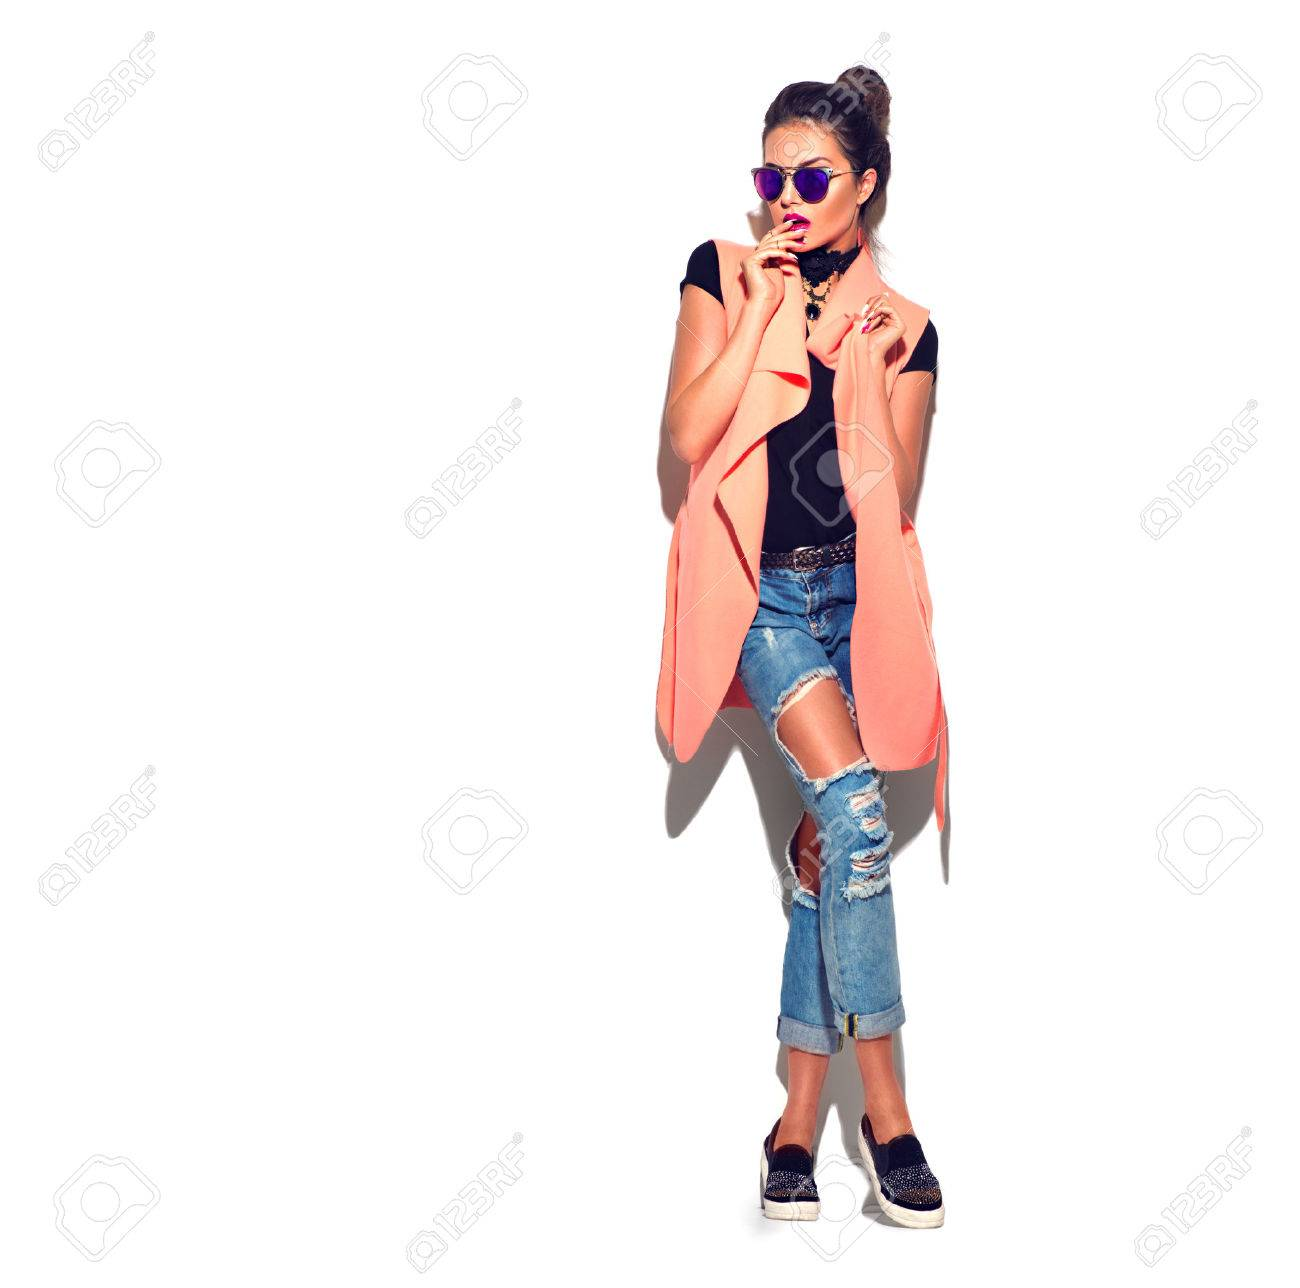 Beauty stylish brunette woman posing in fashionable clothes - 61789362